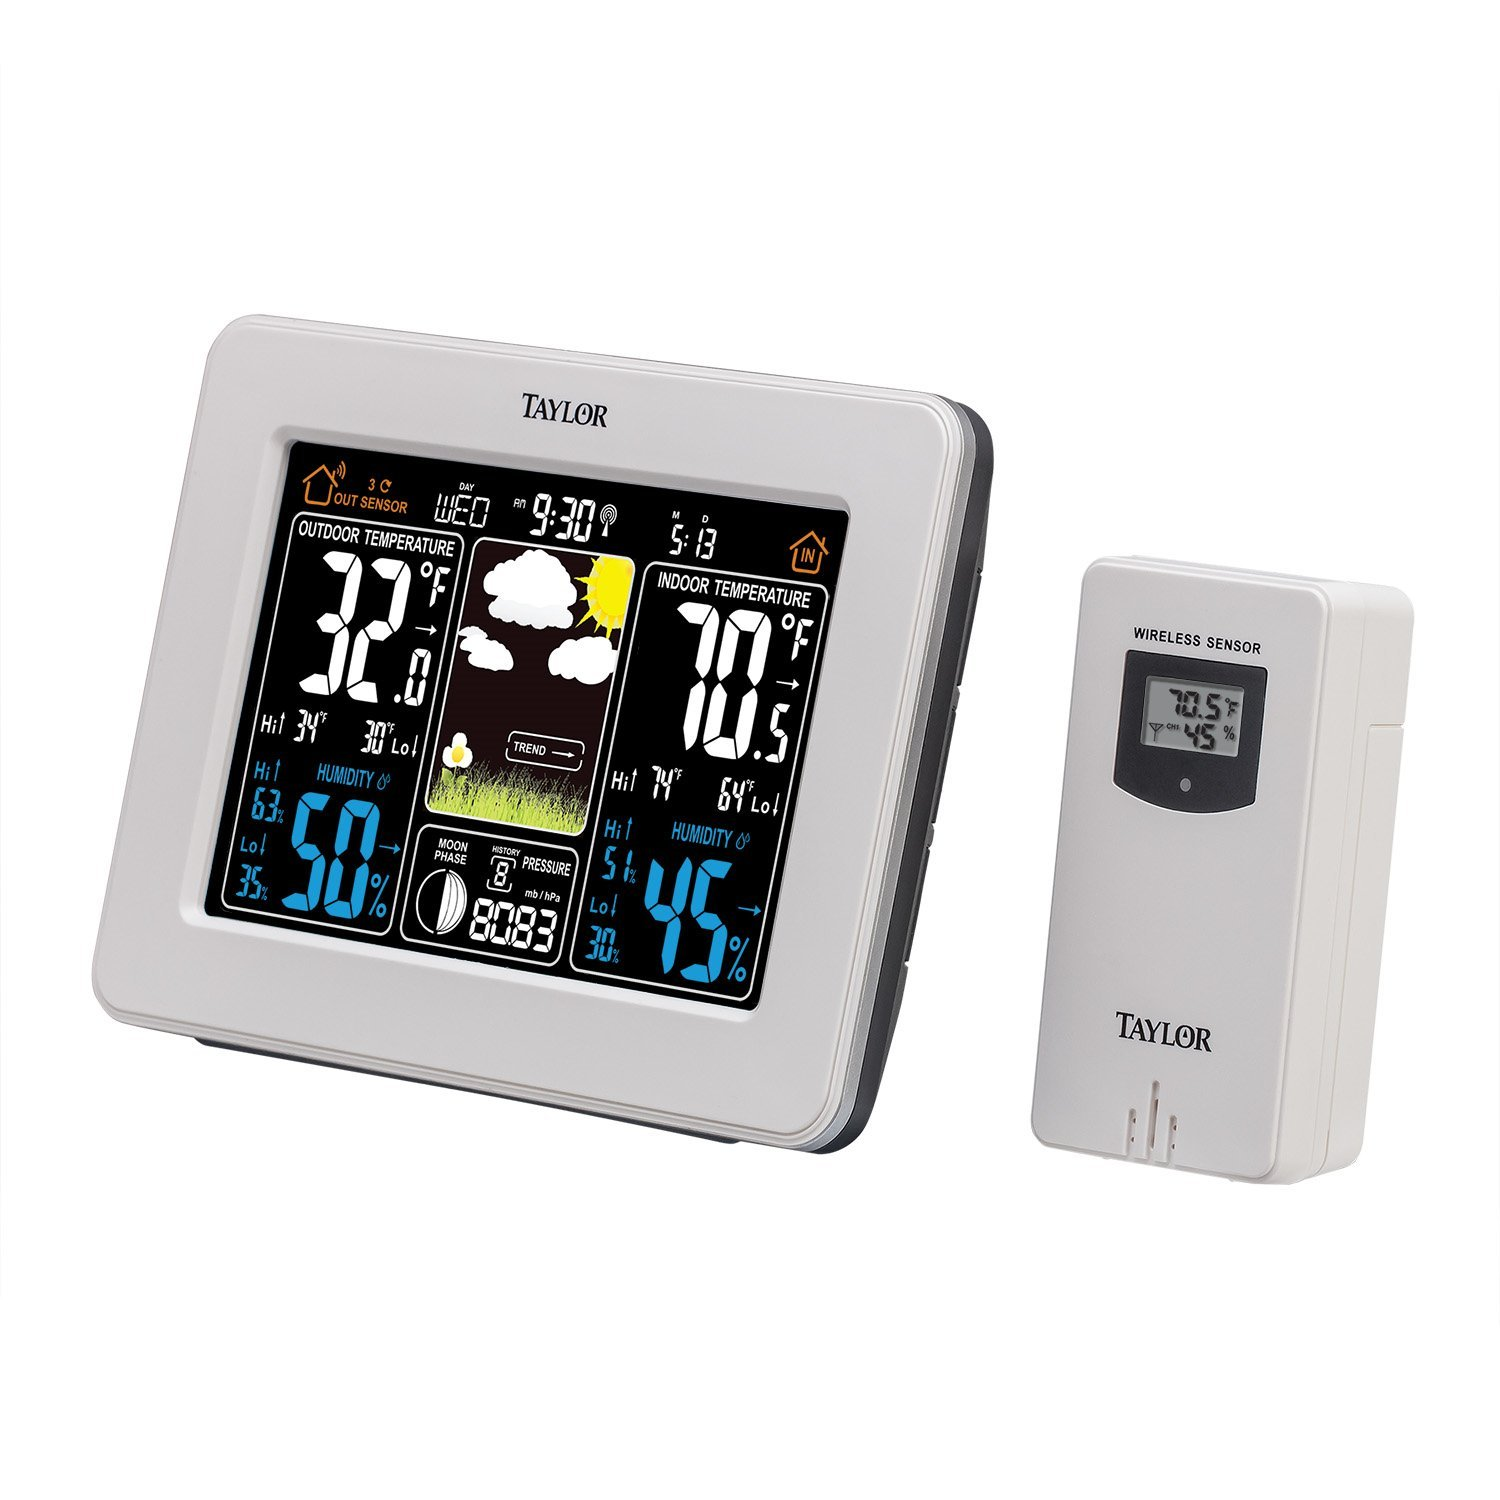 Amazon.com: Taylor Precision Products Digital Deluxe Color Weather ...